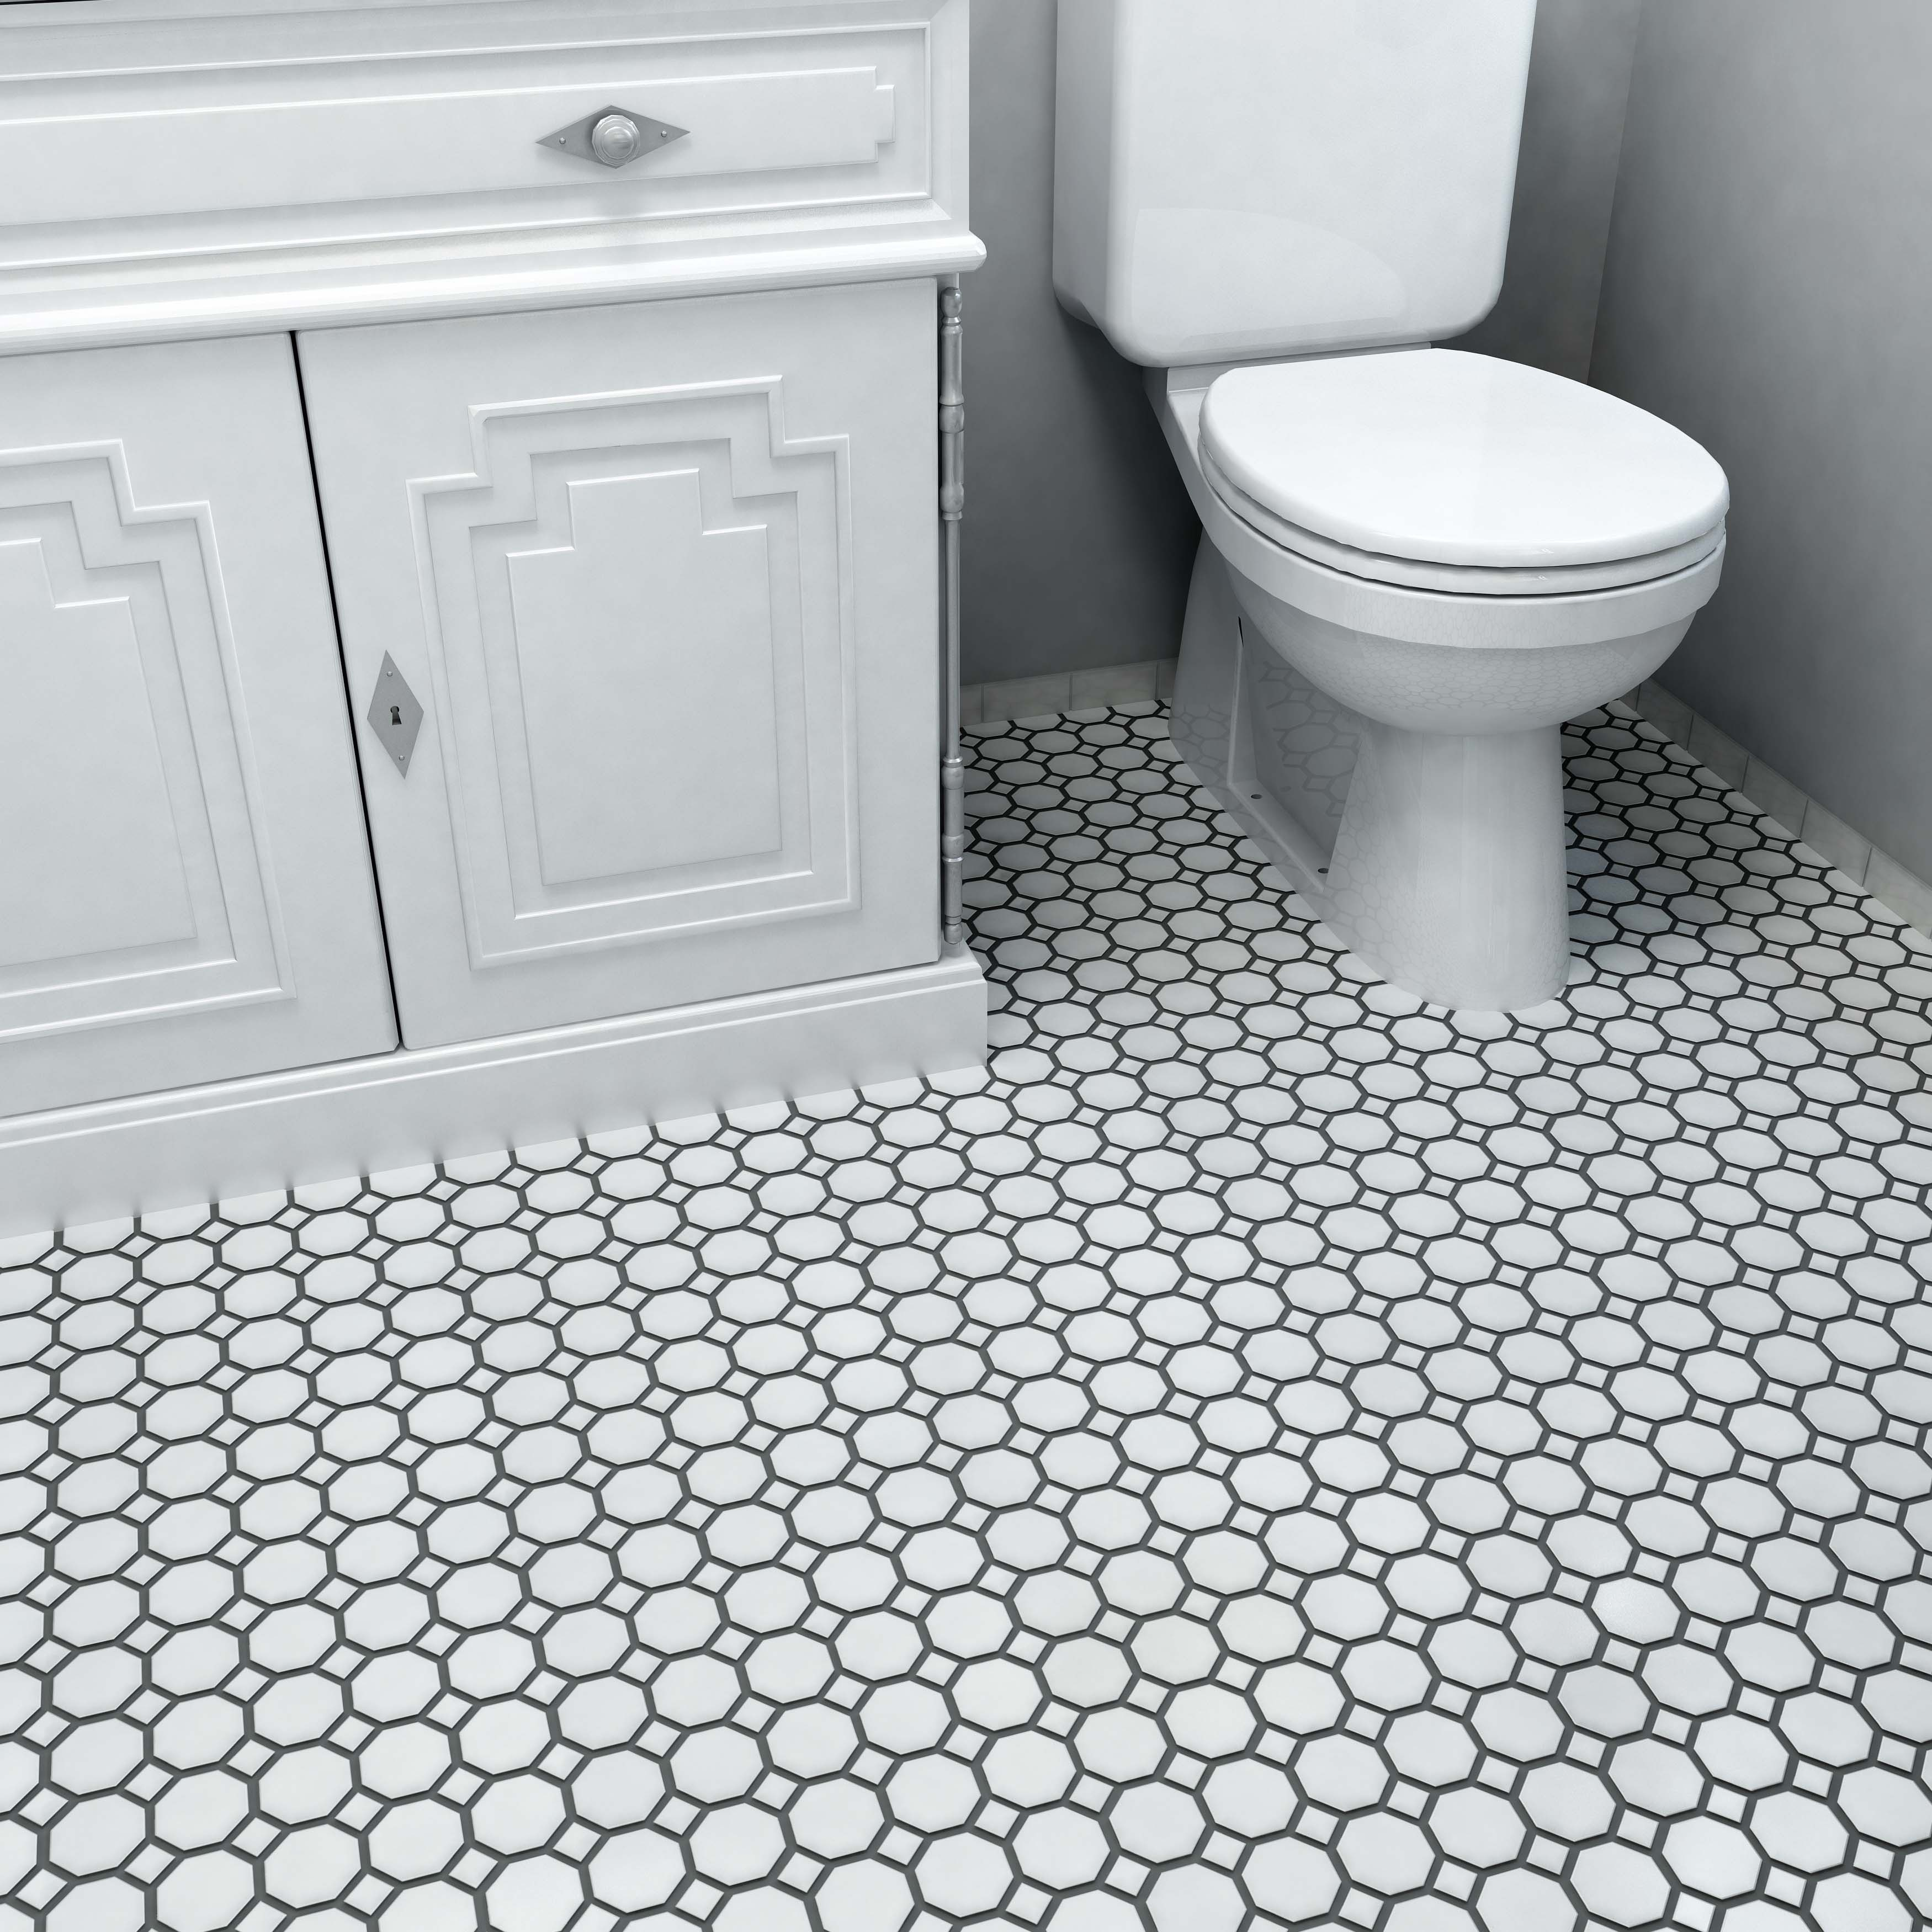 SomerTile 11.5x11.5-inch Victorian Octagon White with Dot Porcelain ...